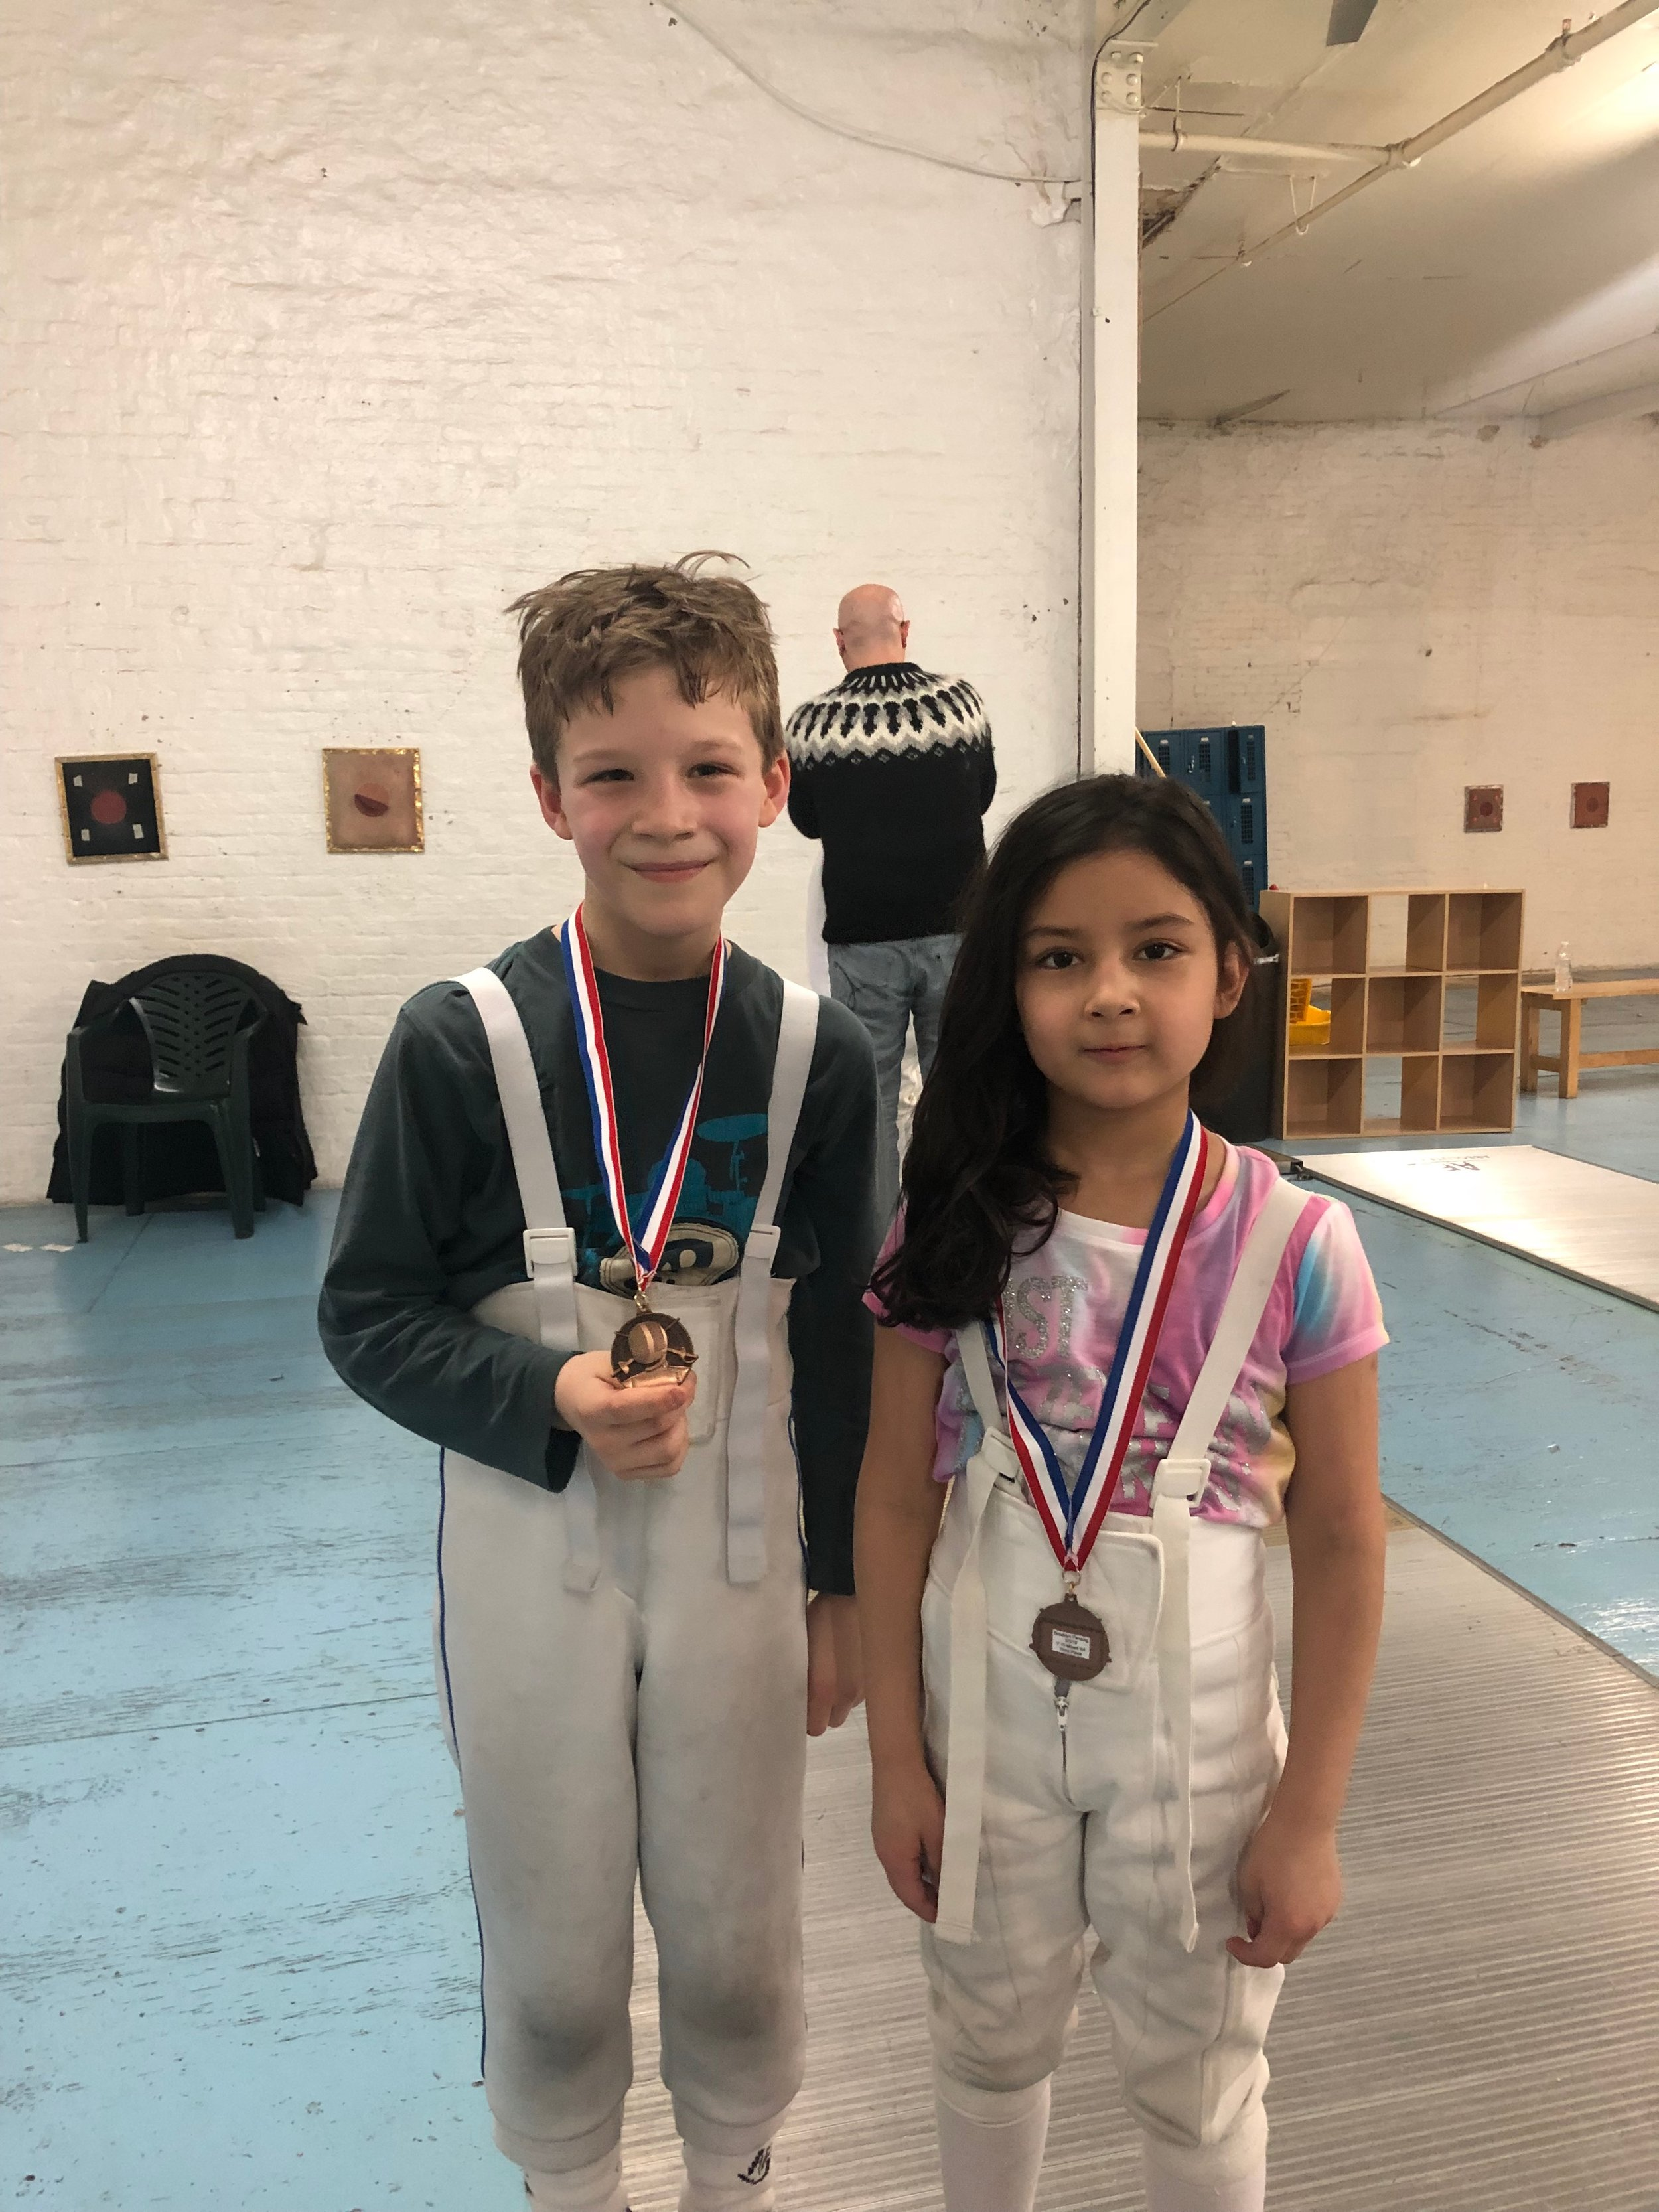 Brooklyn Youth 10 Henry Woodcock 3rd place Emily Cascone 3rd place March 2nd 2019